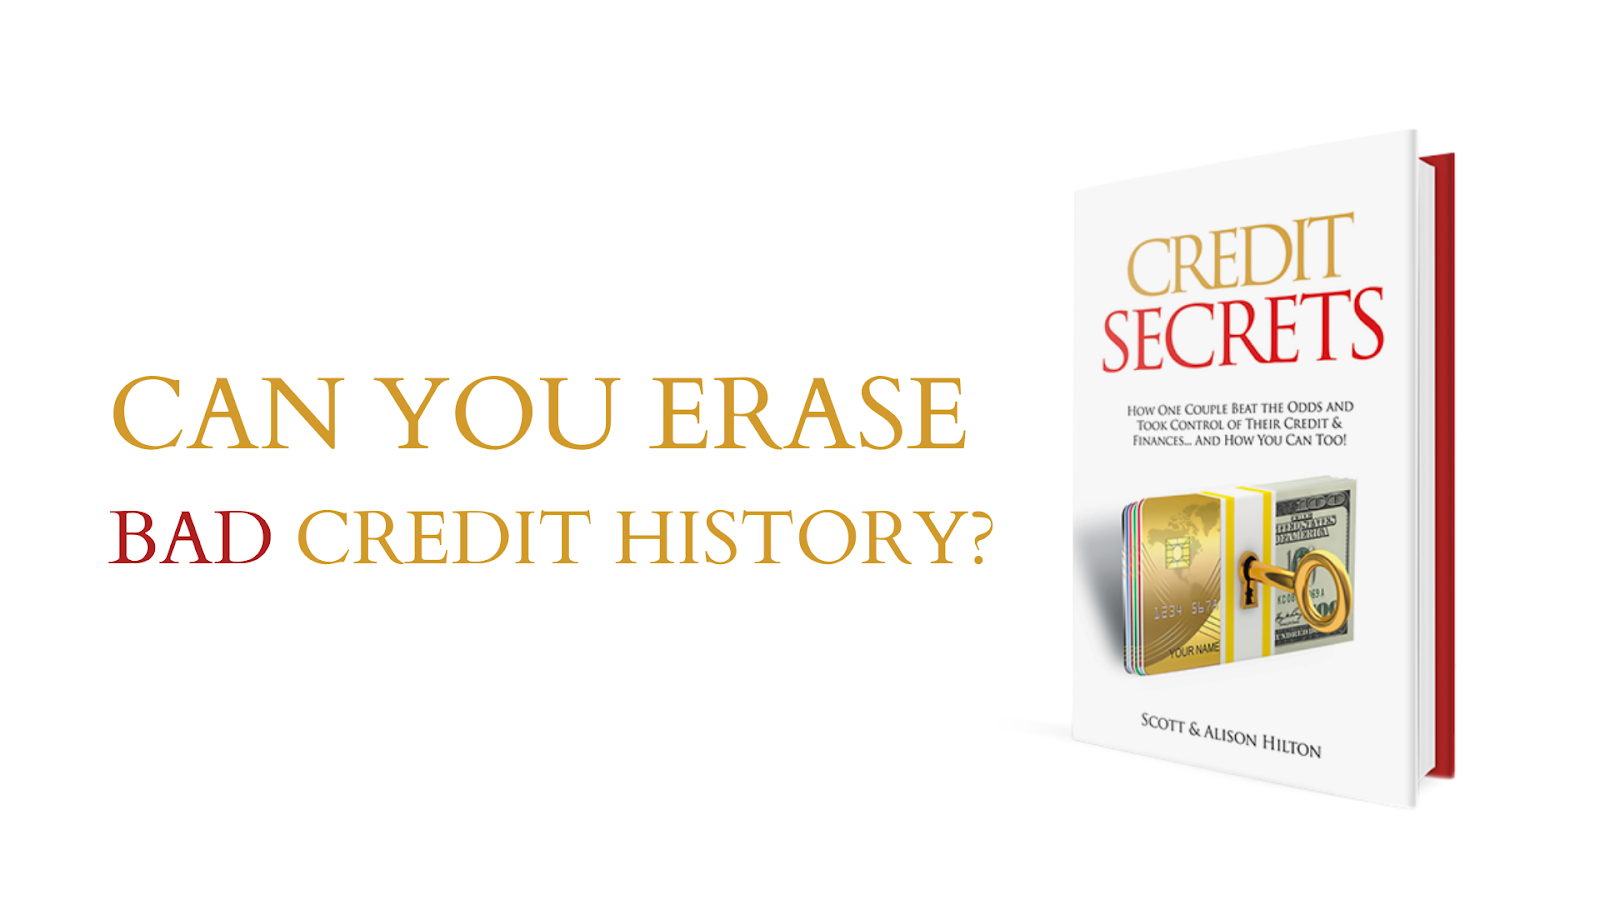 Credit Secrets Book Review